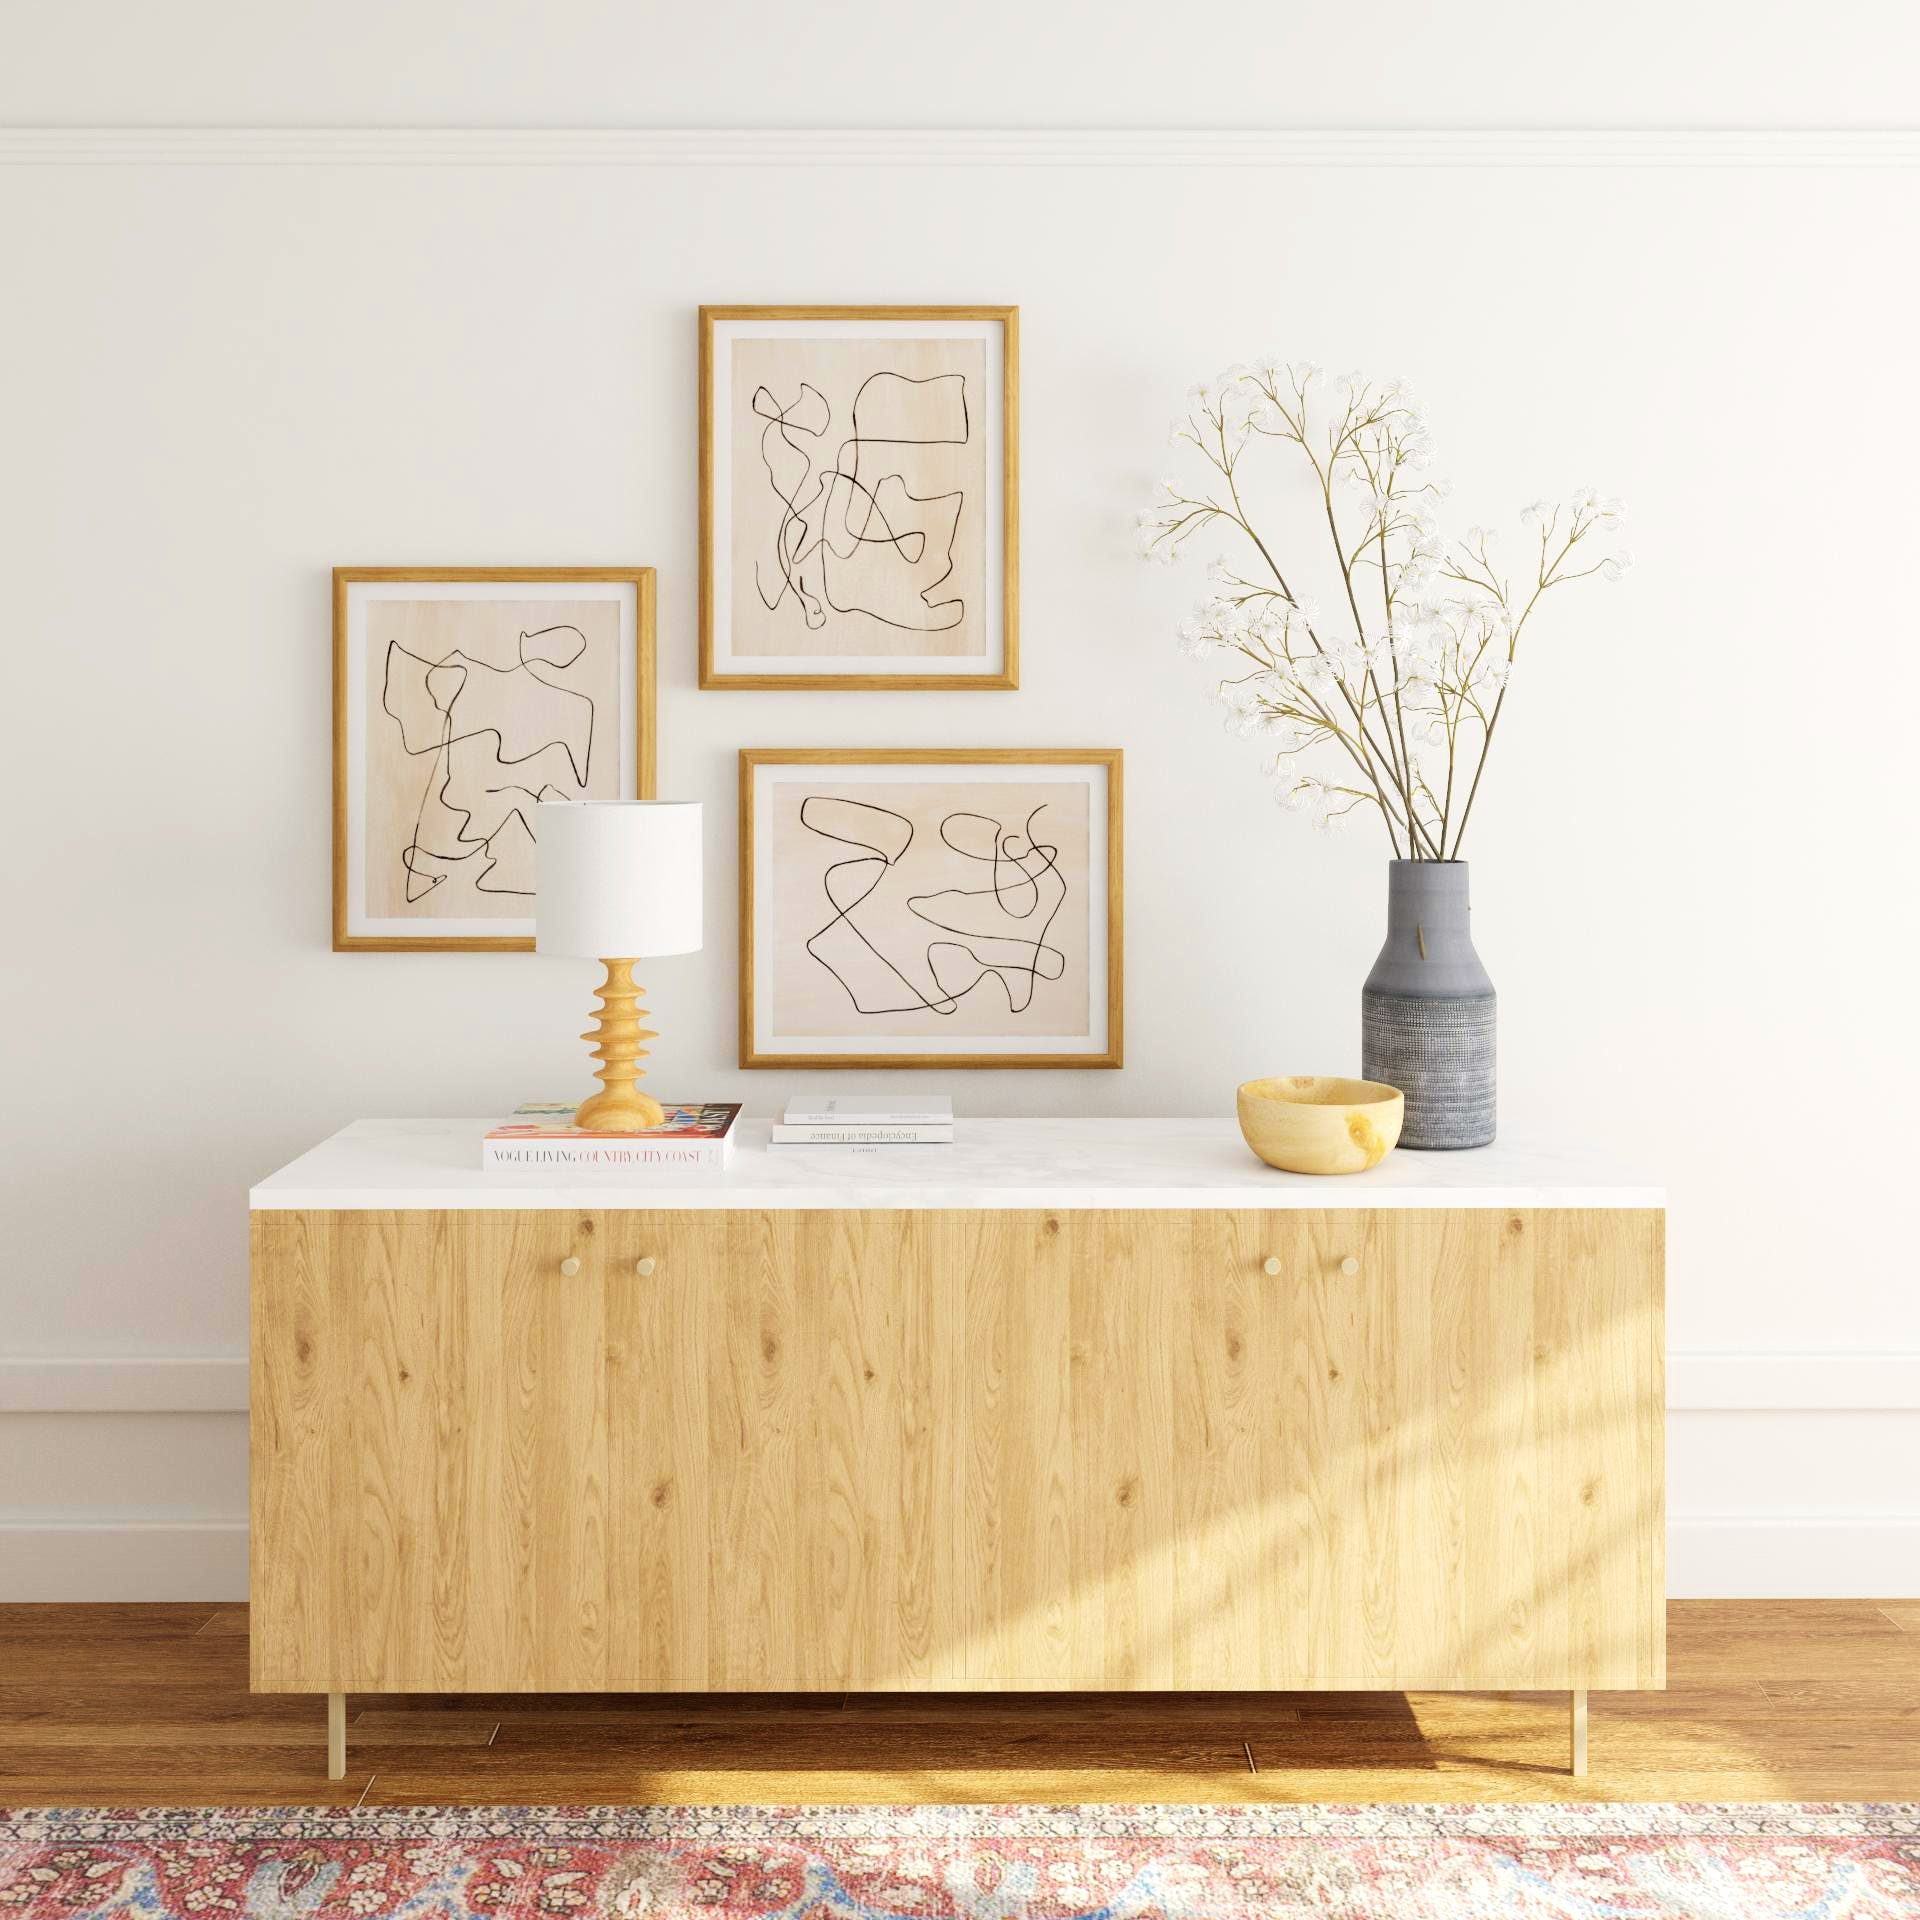 Balancing Act: Matching Your Art and Furniture